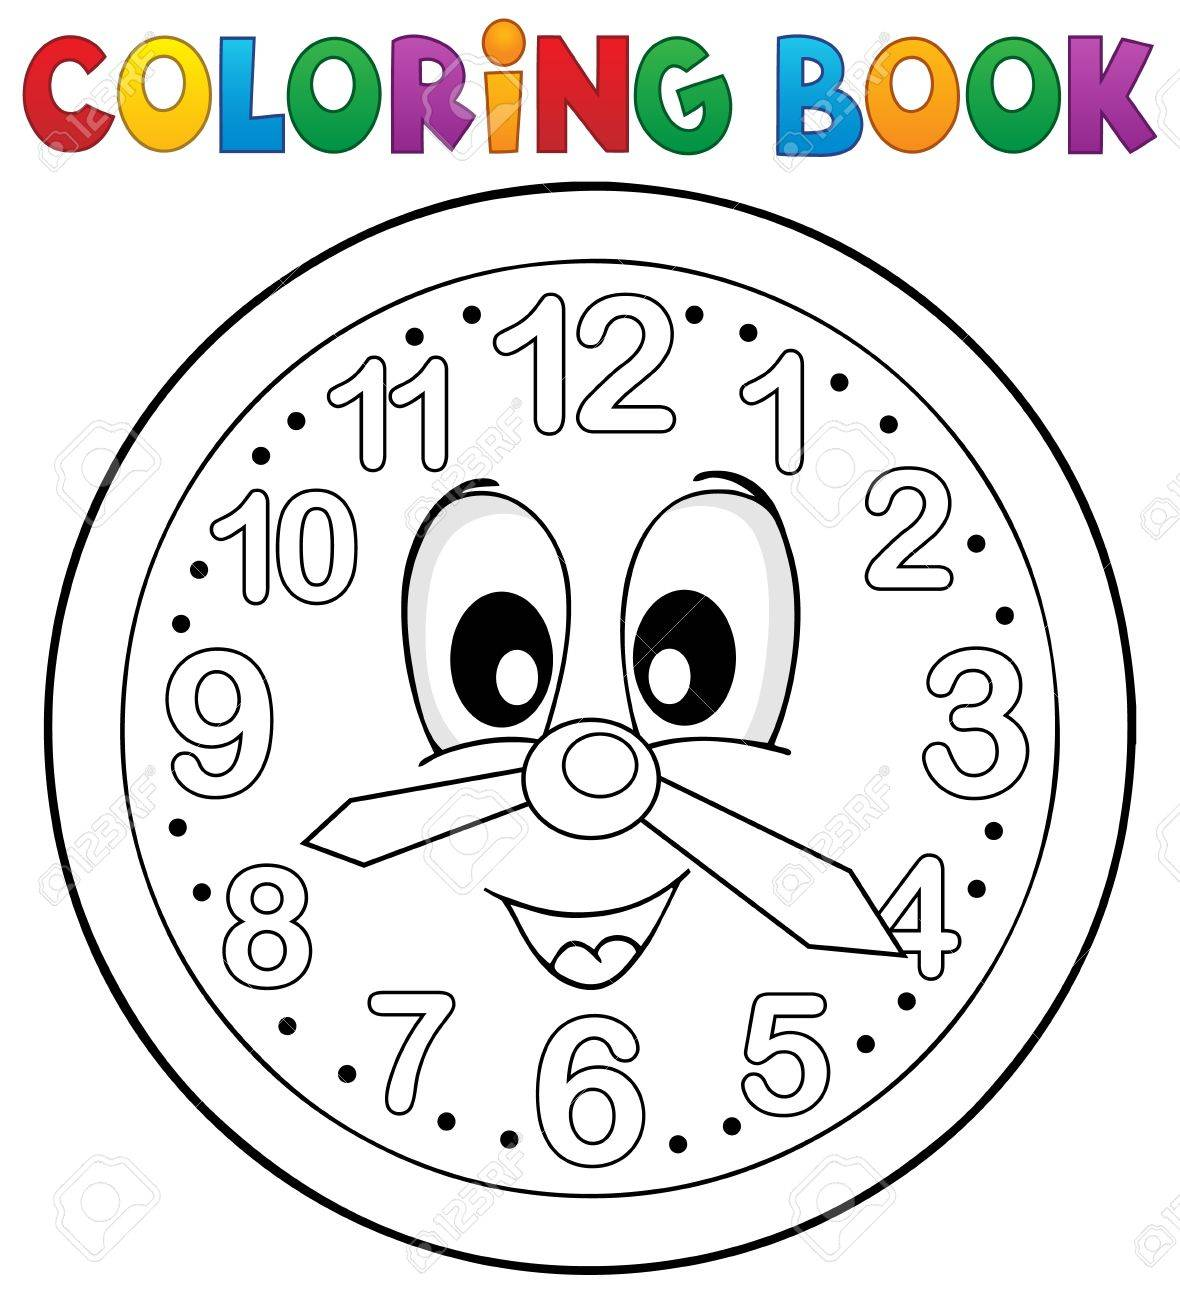 1180x1300 Clock Drawing Stock Photos. Royalty Free Business Images